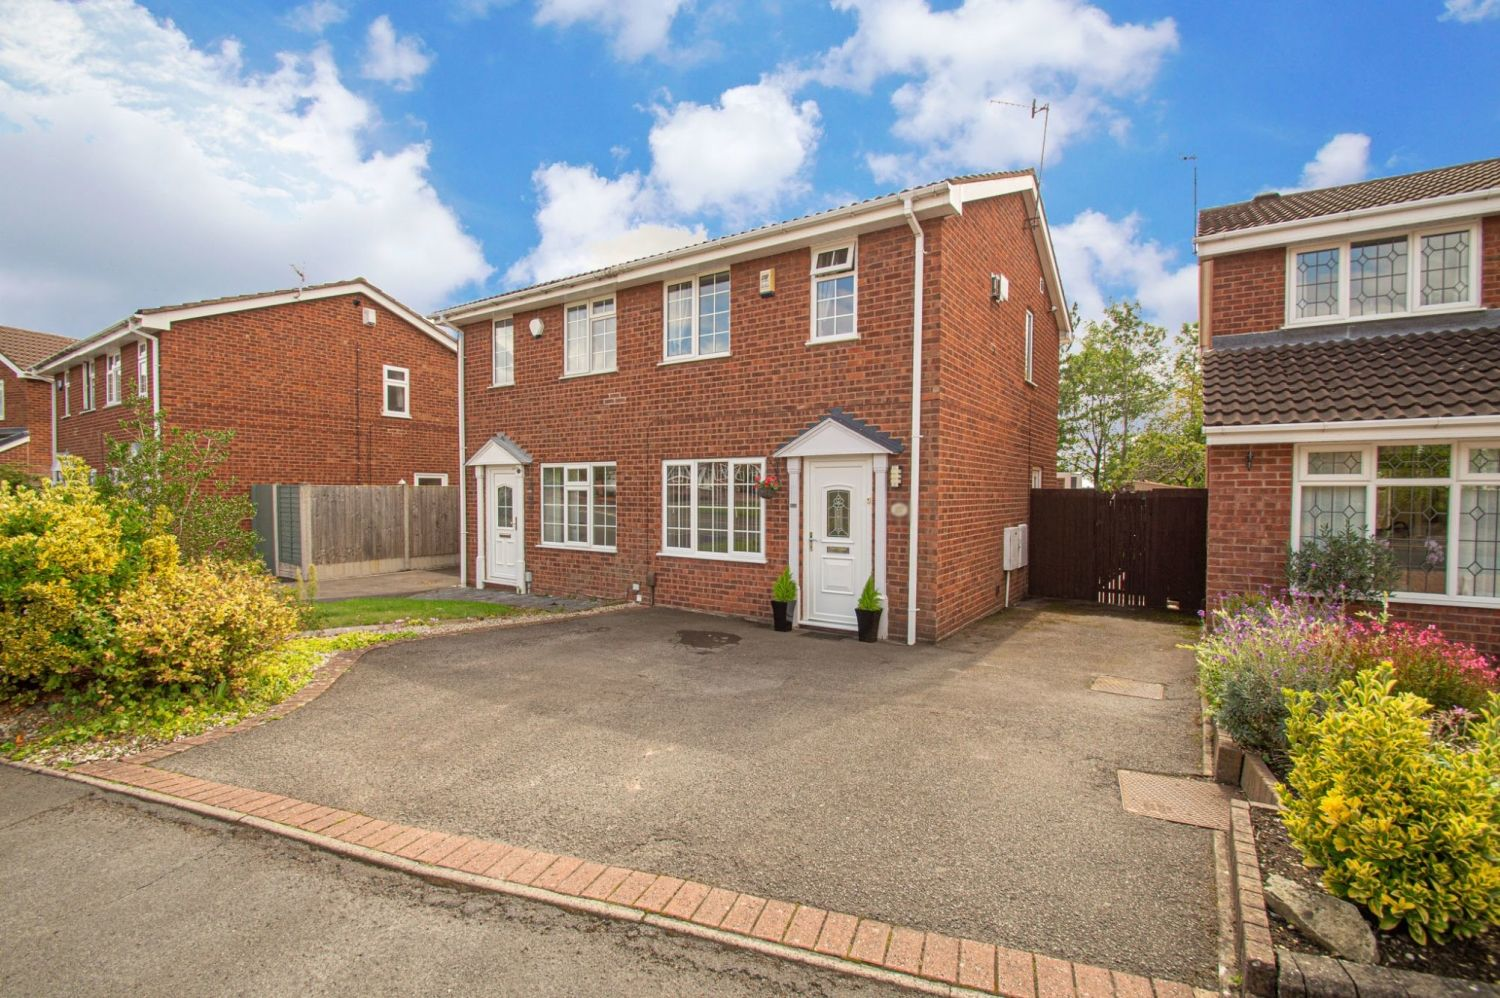 2 bed semi-detached for sale in Brayford Avenue, Brierley Hill - Property Image 1